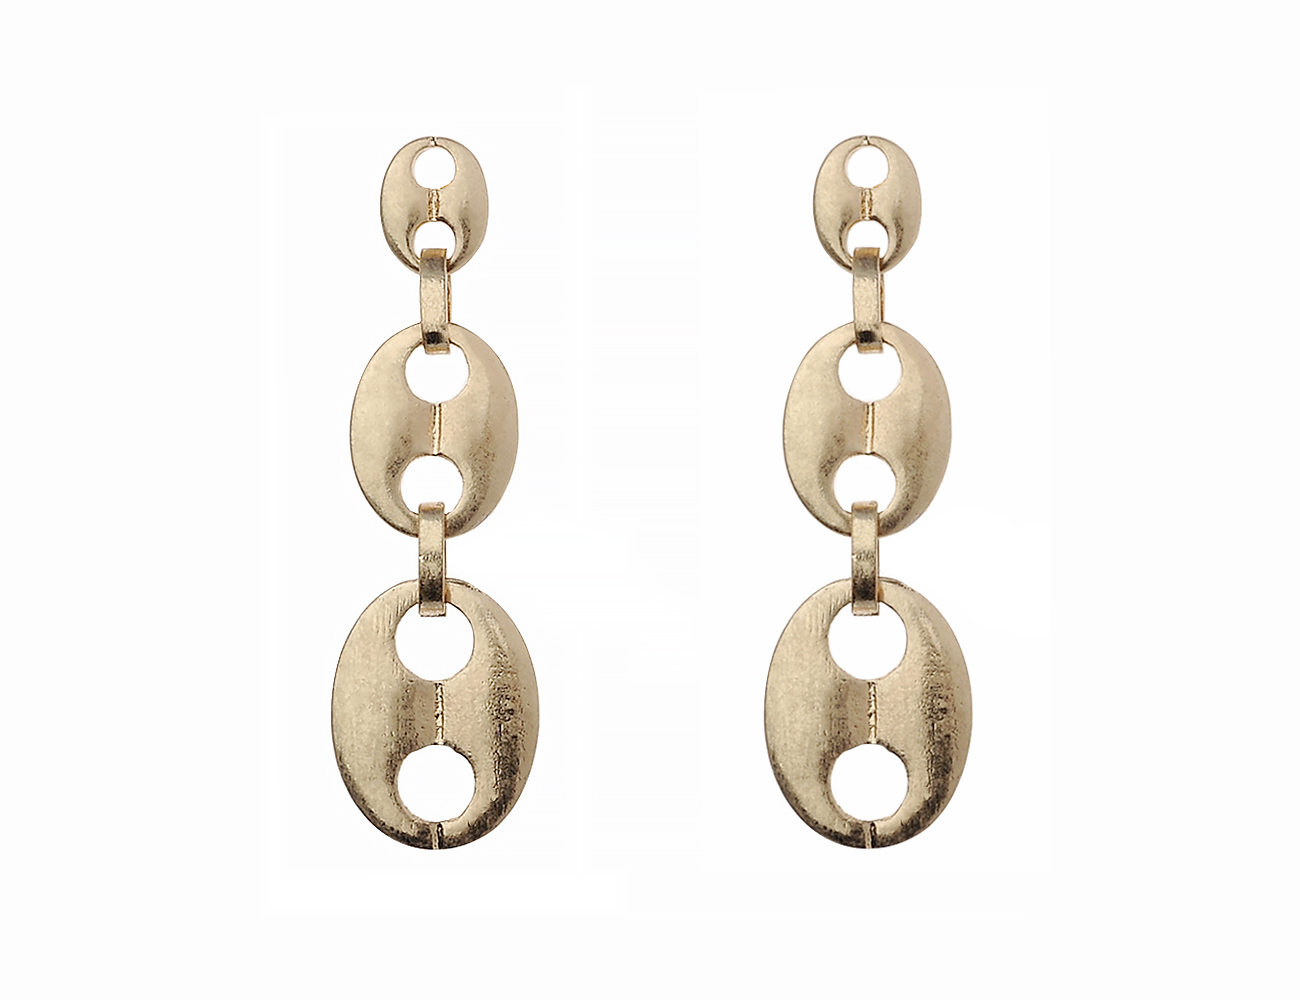 Worn Gold Earring